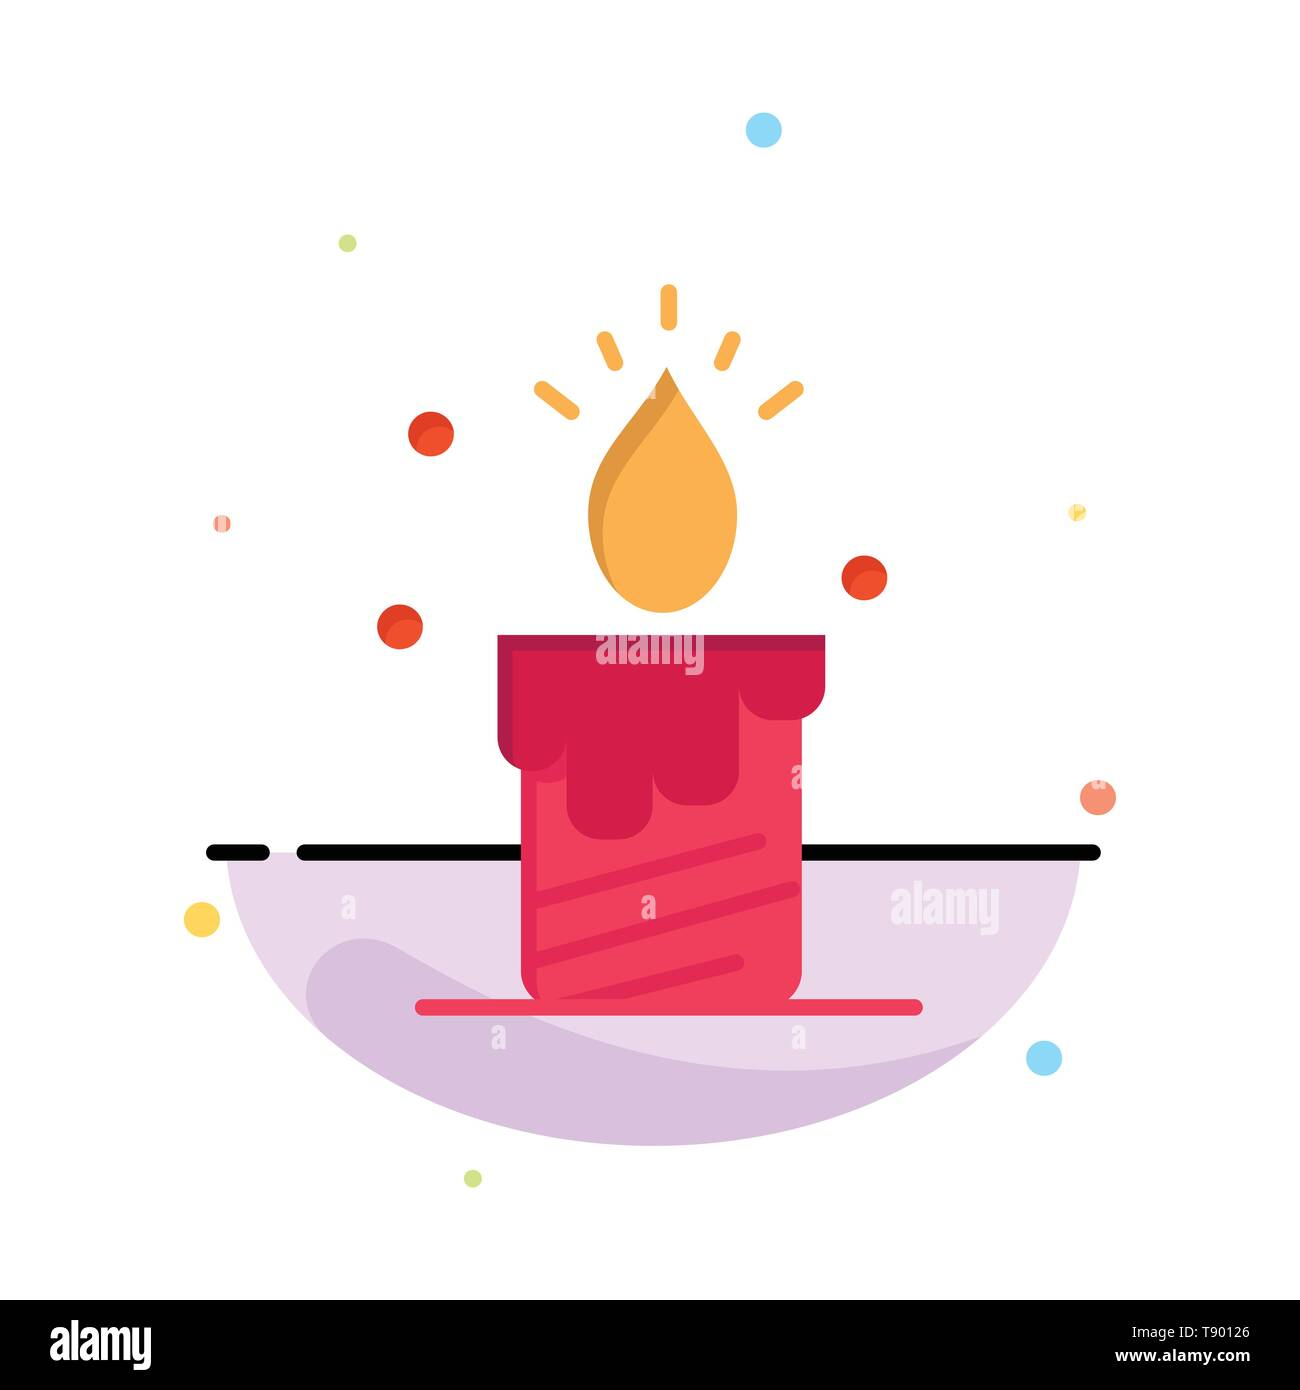 Candle, Light, Wedding, Love Abstract Flat Color Icon Template - Stock Image